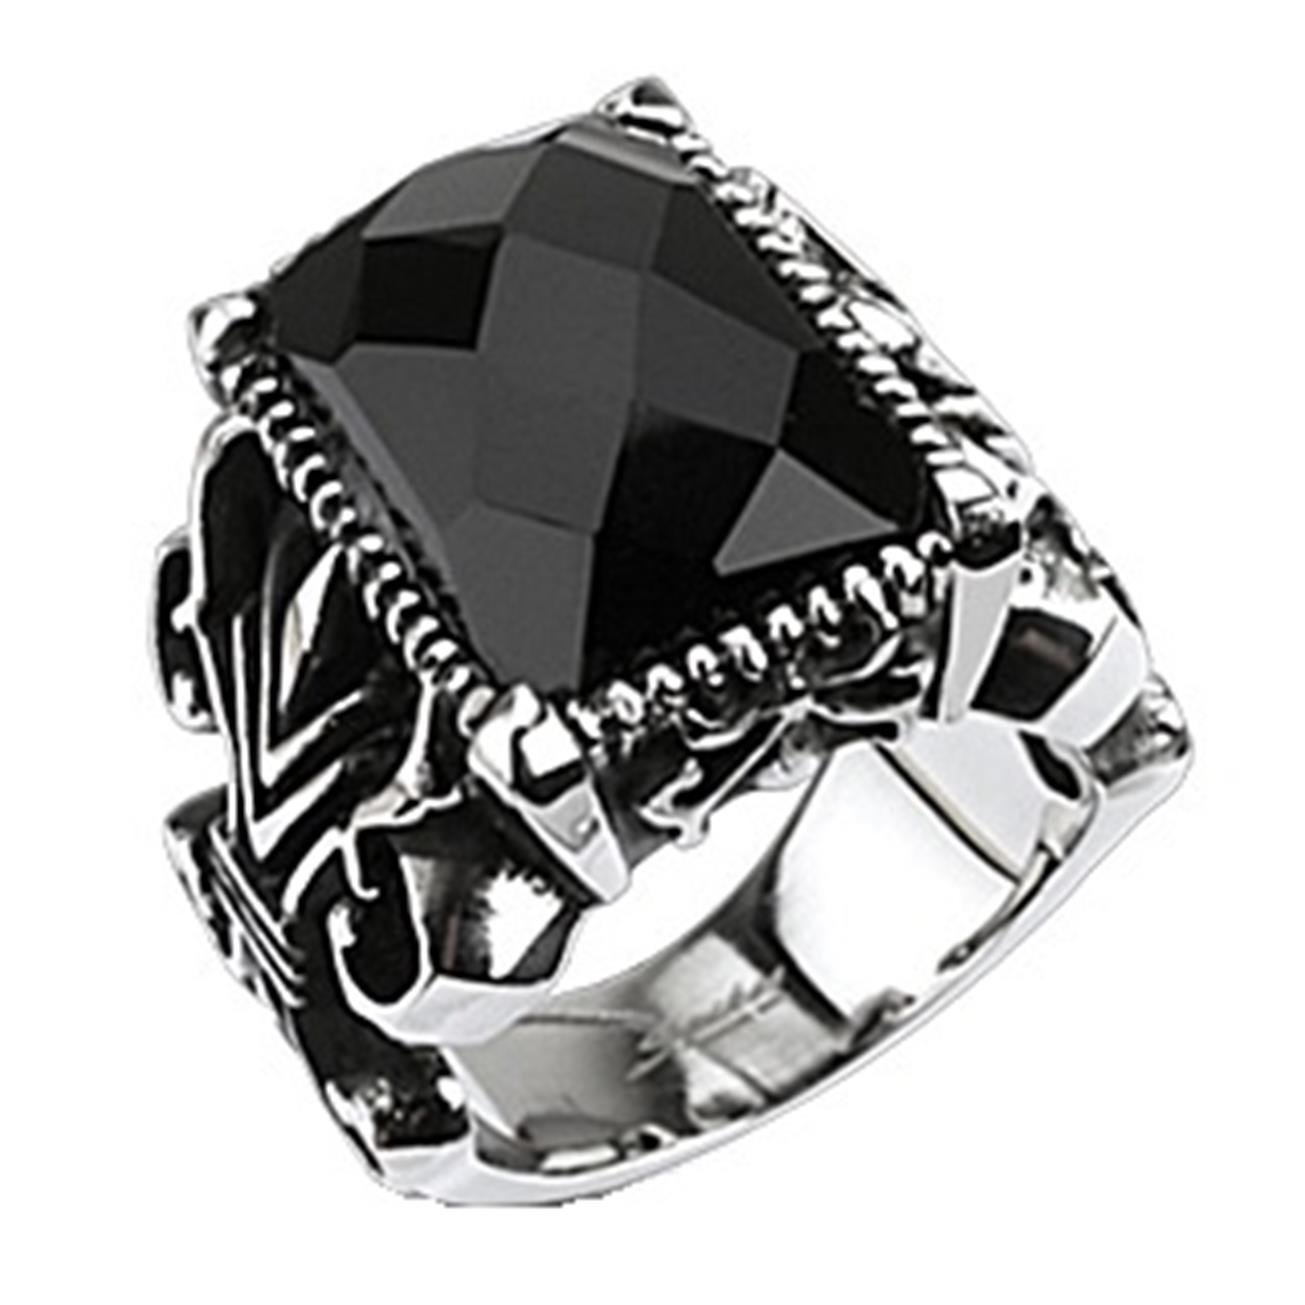 Paula & Fritz Stainless Steel Ring Surgical Steel 316L Gothic Ring Black Onyx Stone R-Q5196